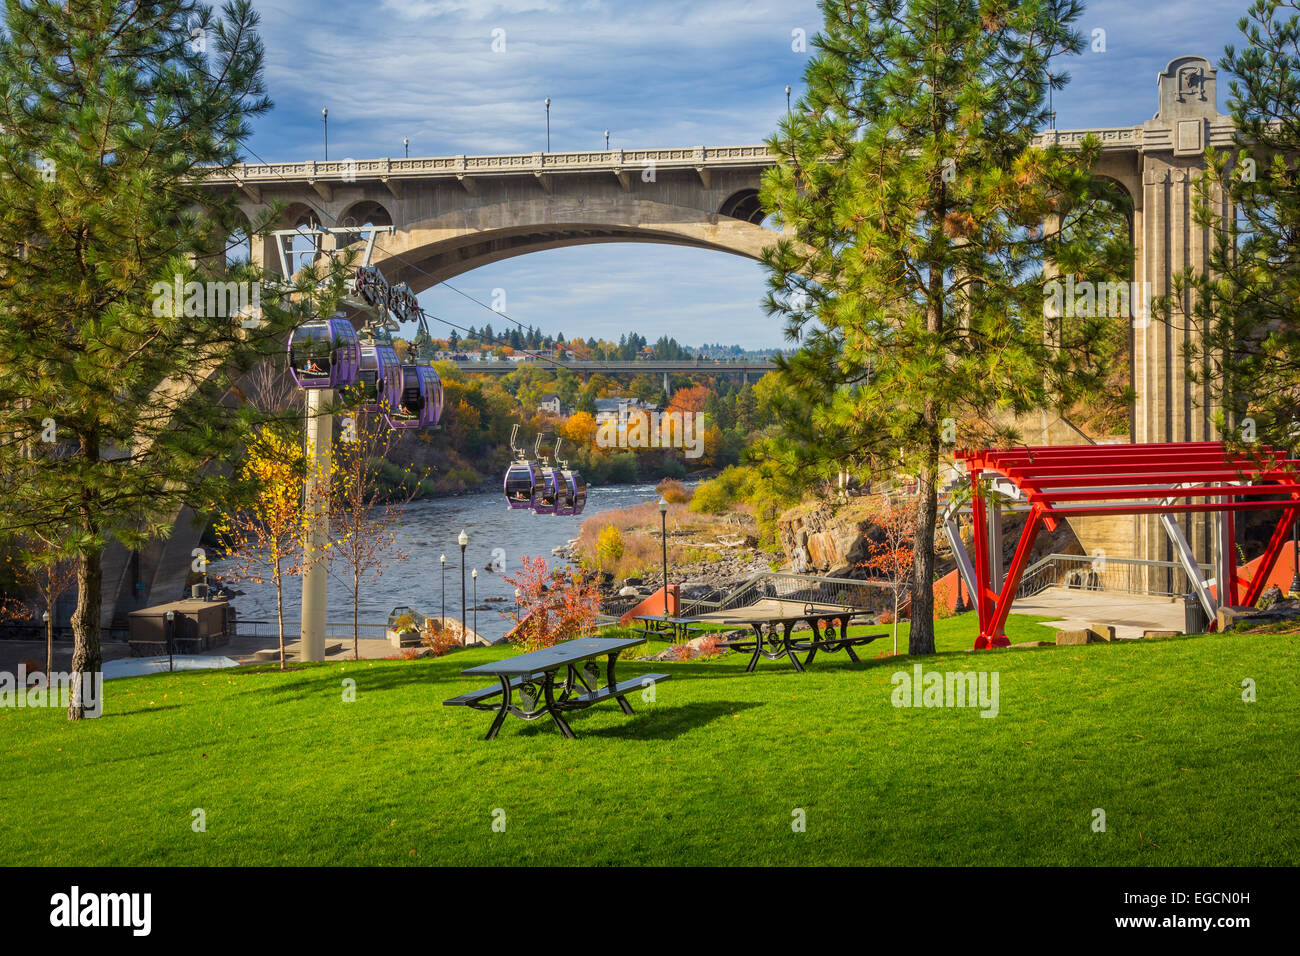 Spokane is a city located in the Northwestern United States in the state of Washington. It is the largest city of Stock Photo